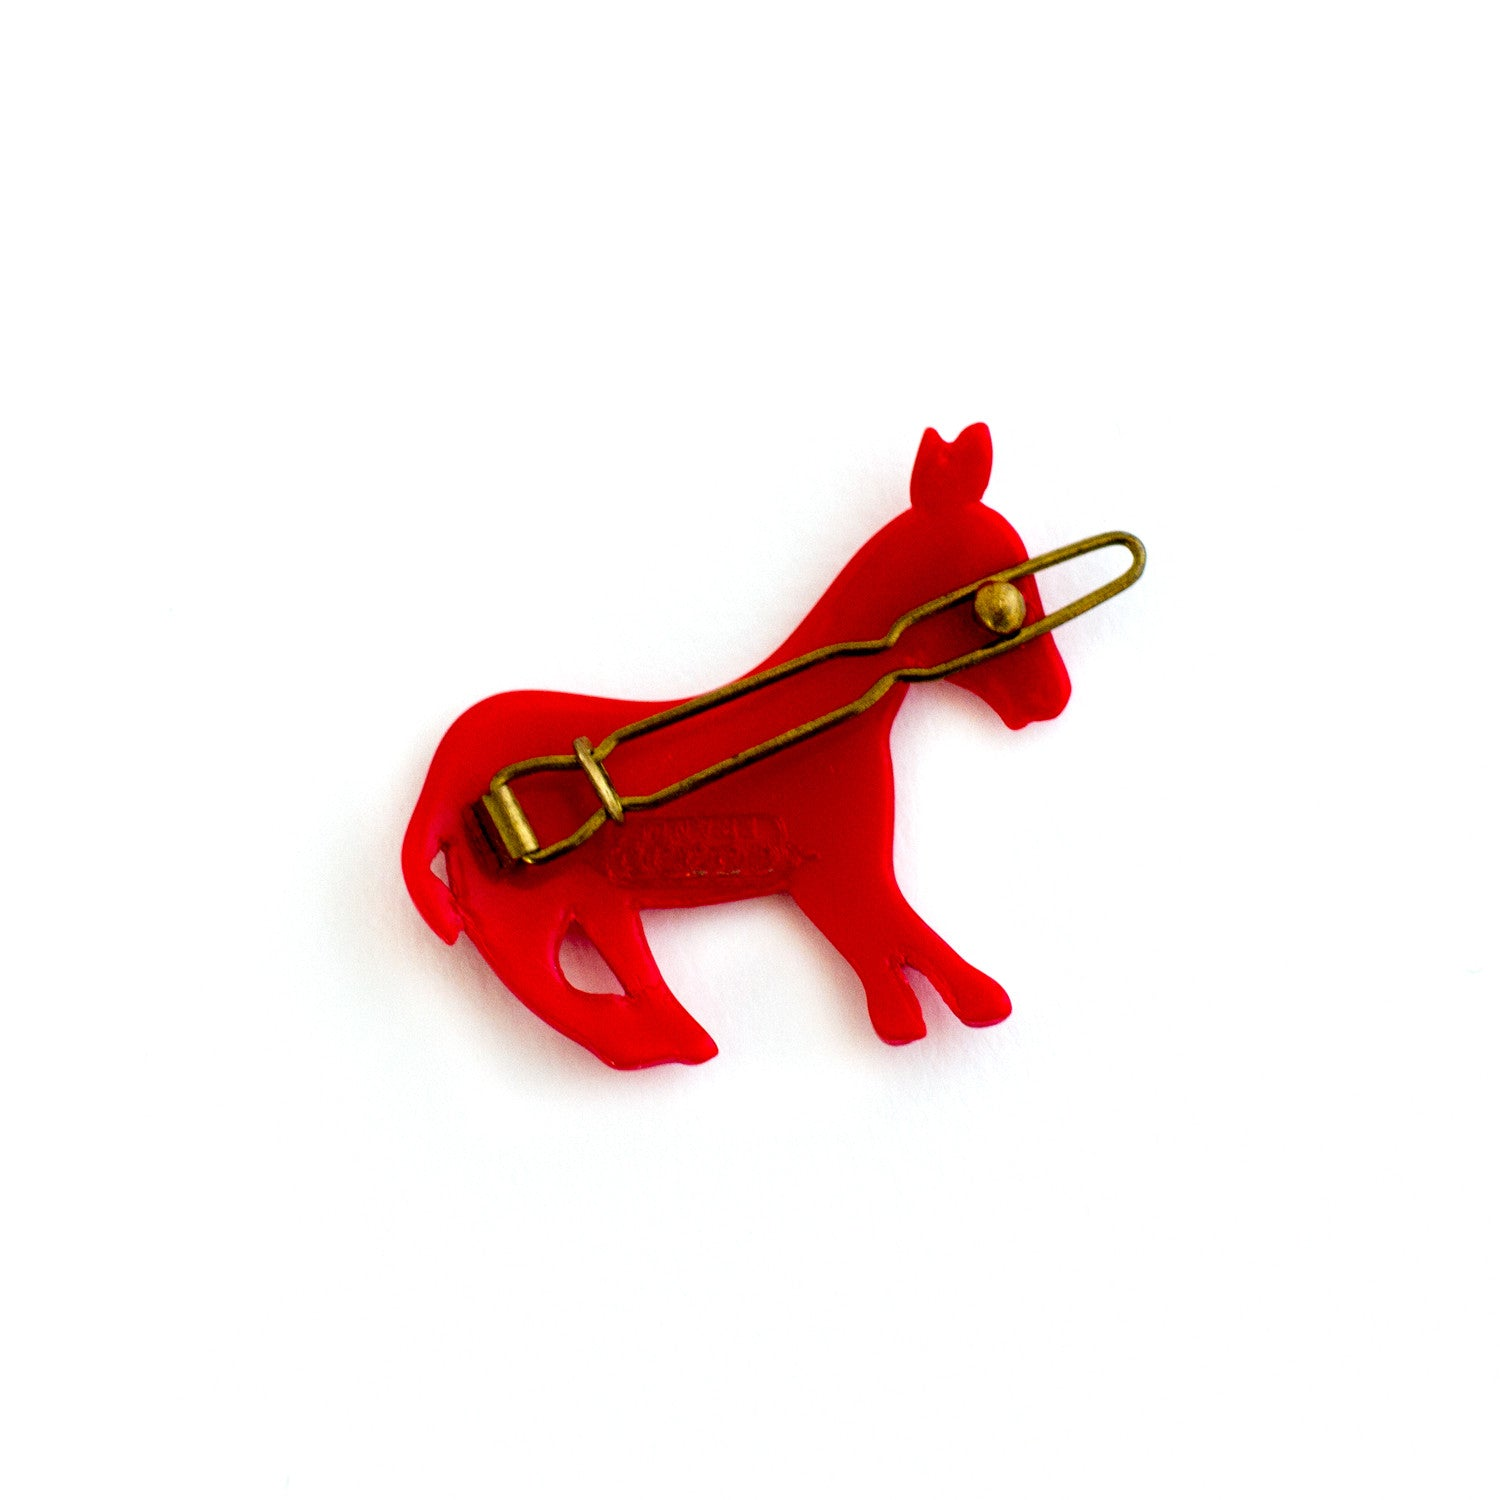 brass back - red donkey shaped hair clip - vintage made in france